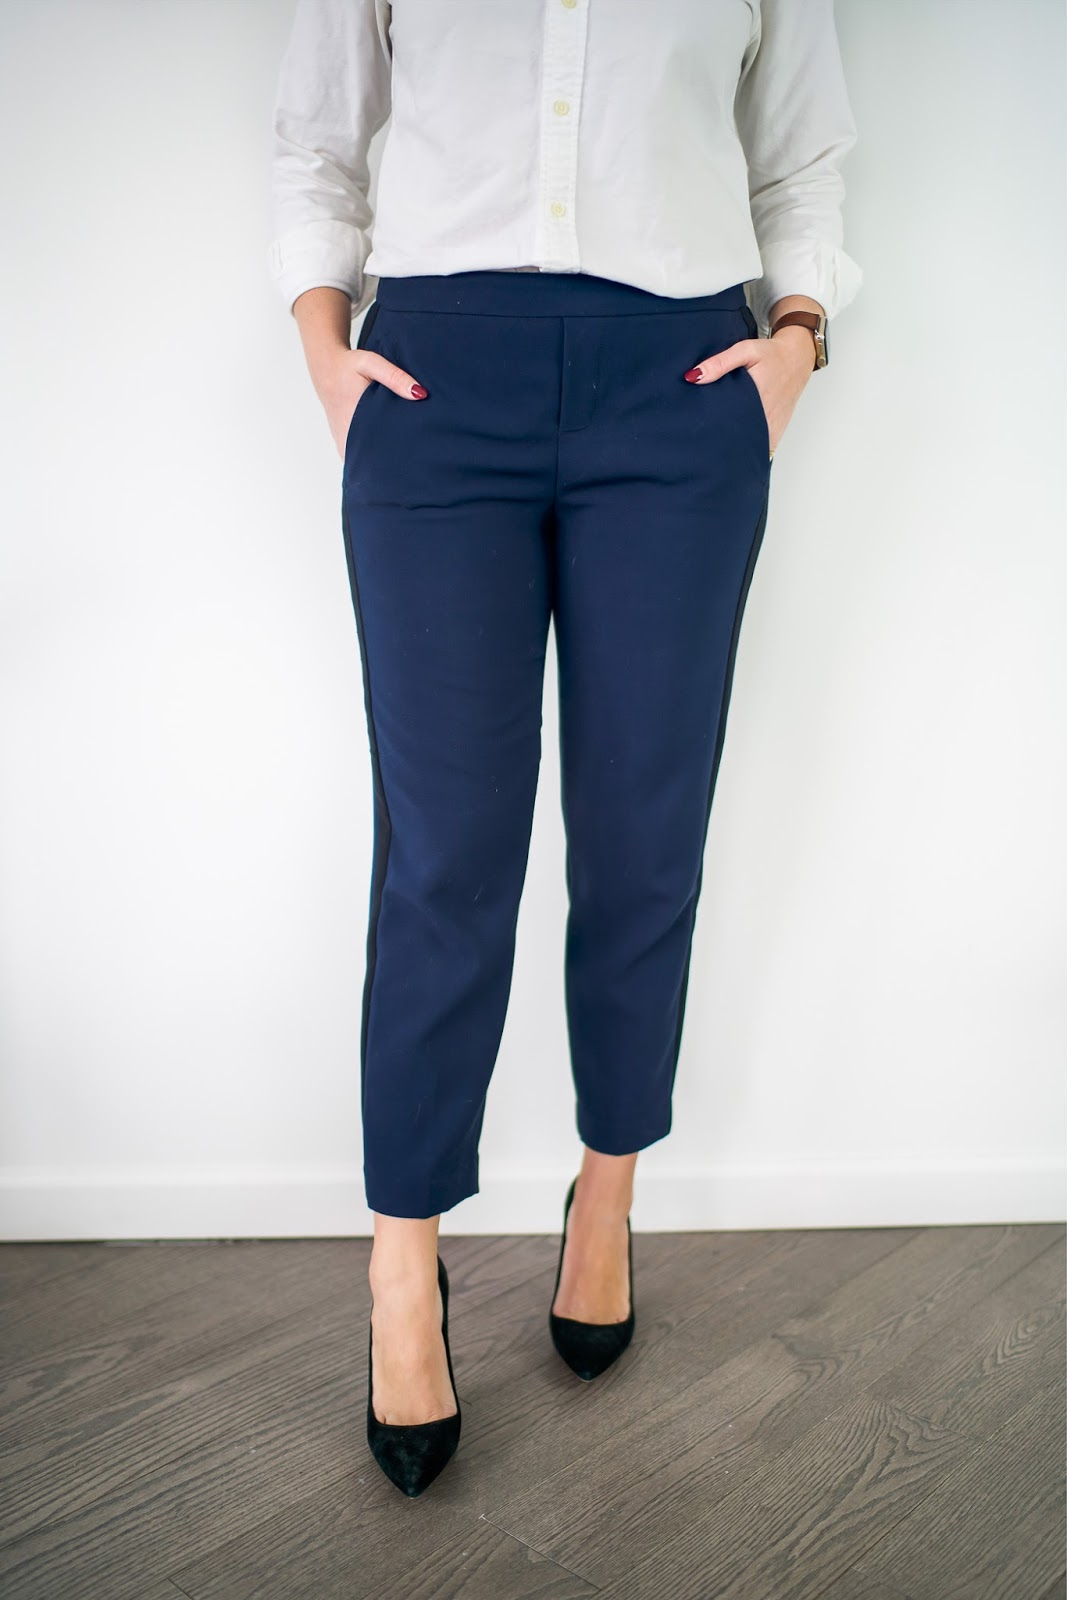 Oct 02,  · These types of pants are also easy to style -- wide leg pants look great with a tucked in button-up, a loose tank or a cardigan. It's simple to dress up a drawstring waist with a silk blouse or a sequined top, and silk pants look nice with a denim shirt or a slouchy tee. Feeling too casual? A structured blazer will solve that problem in a hot second.